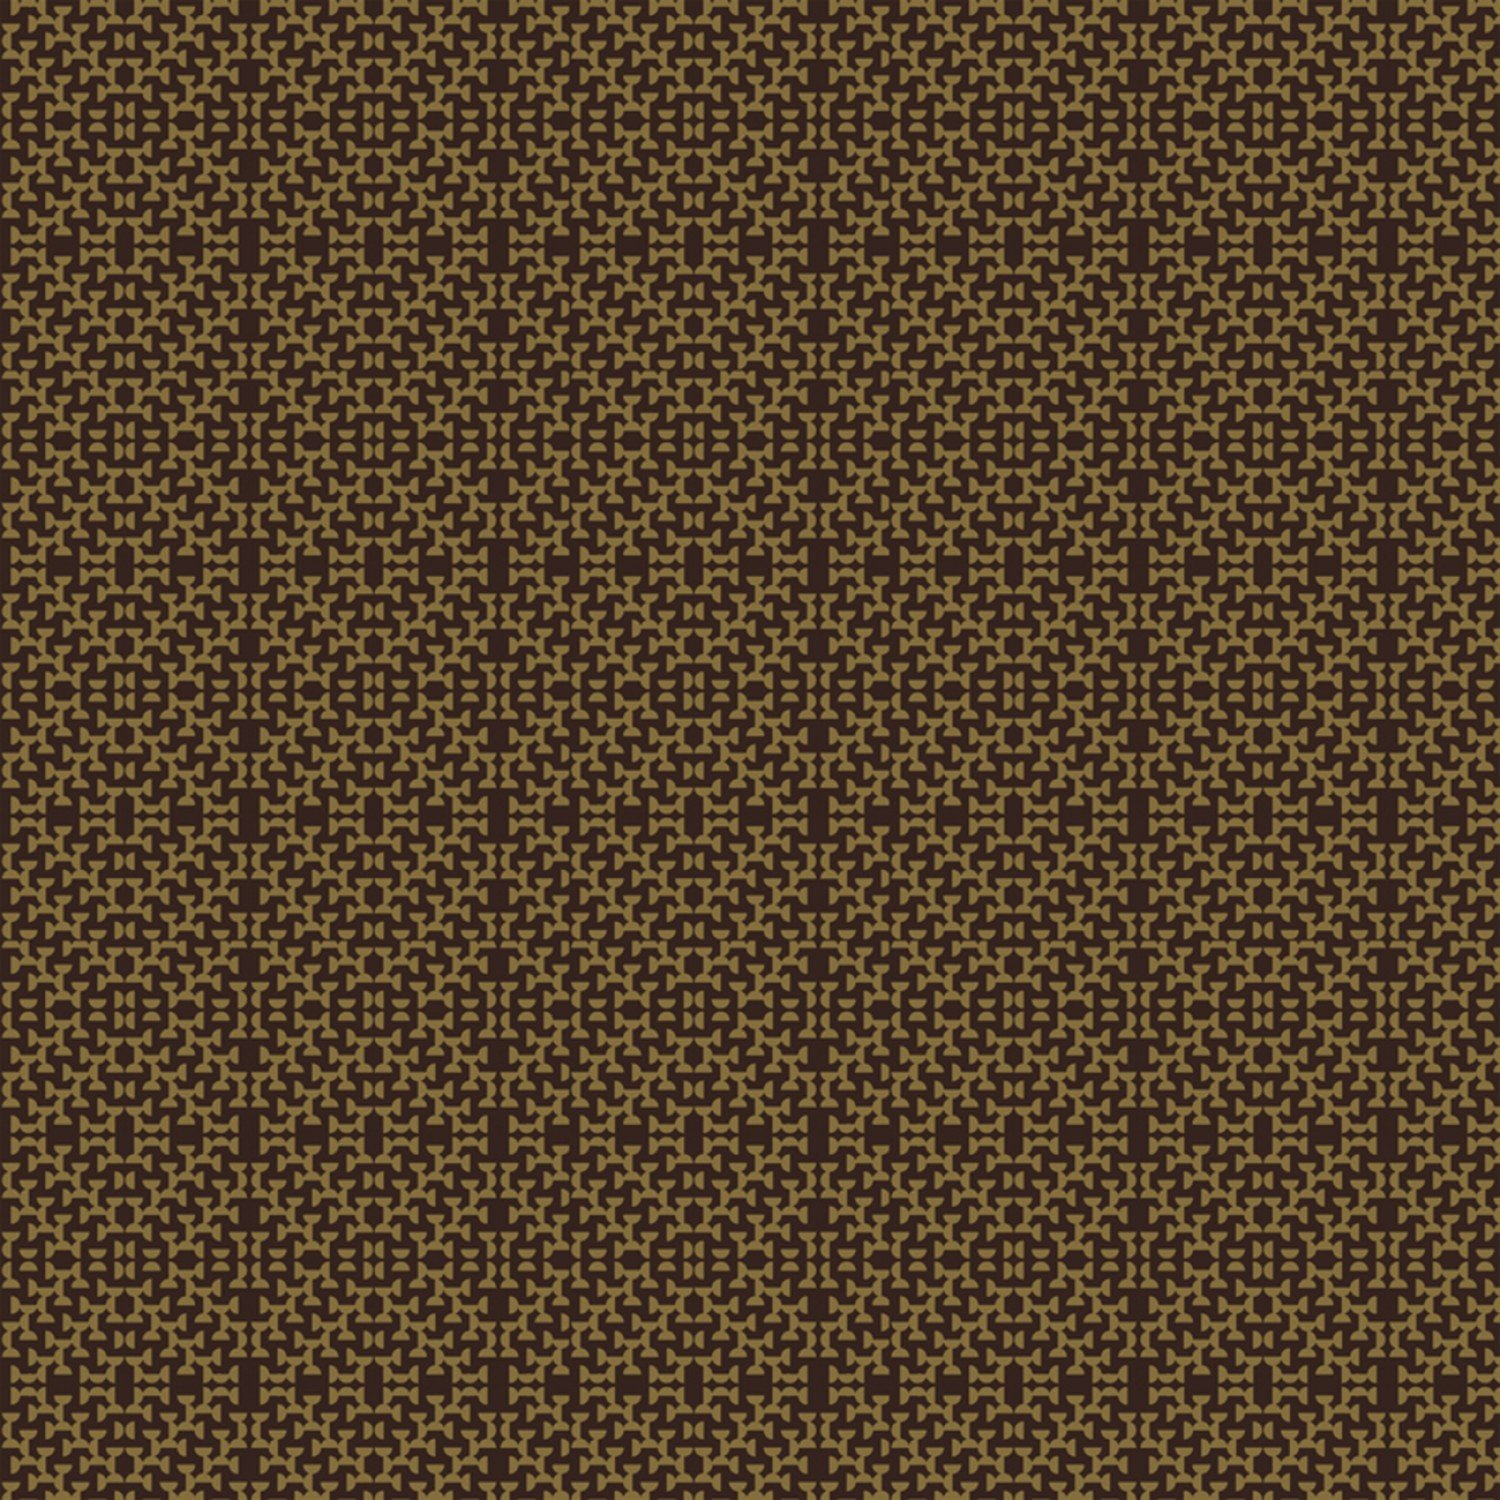 51576-7 Pottery Leather Diamonds by Dale Allen-Rowse for Windham Fabrics. 100% cotton 43 wide